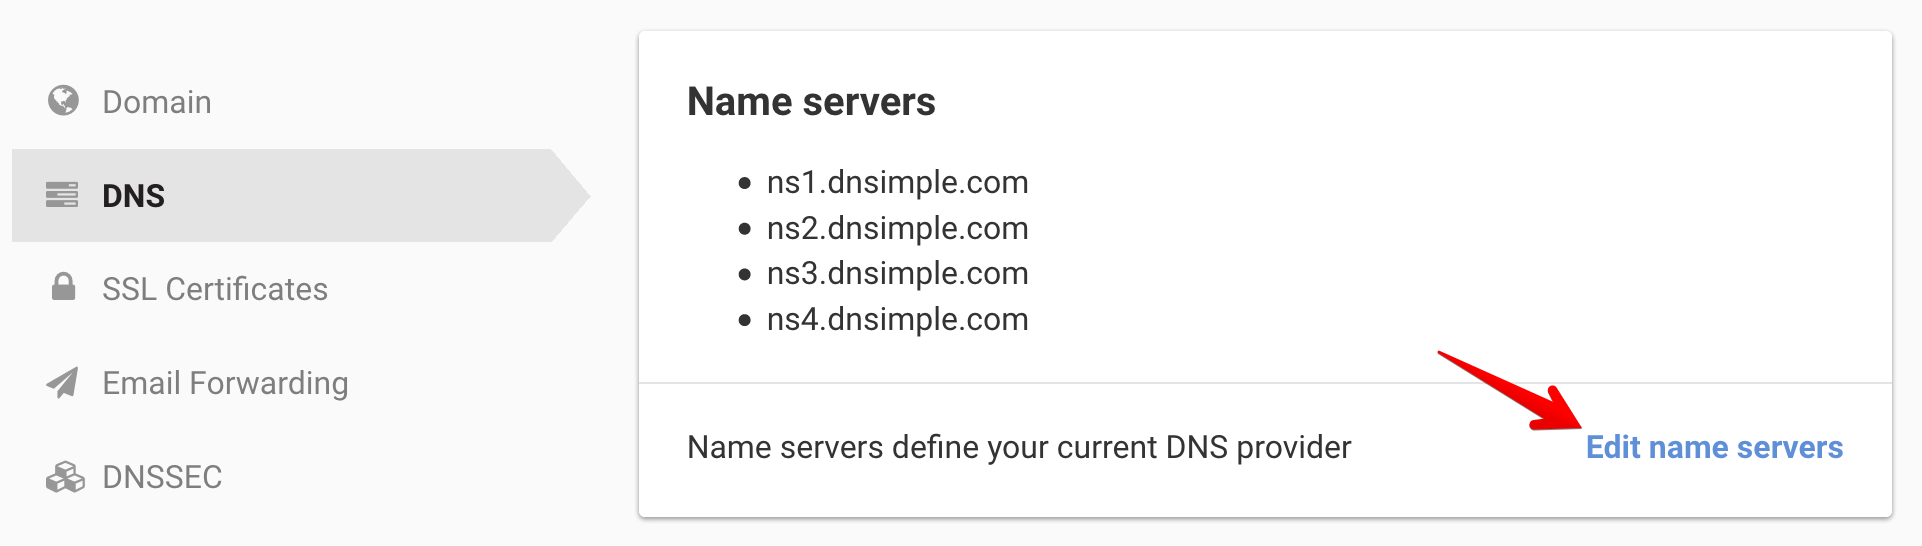 https://support dnsimple com/articles/a-record/ 2019-09-11